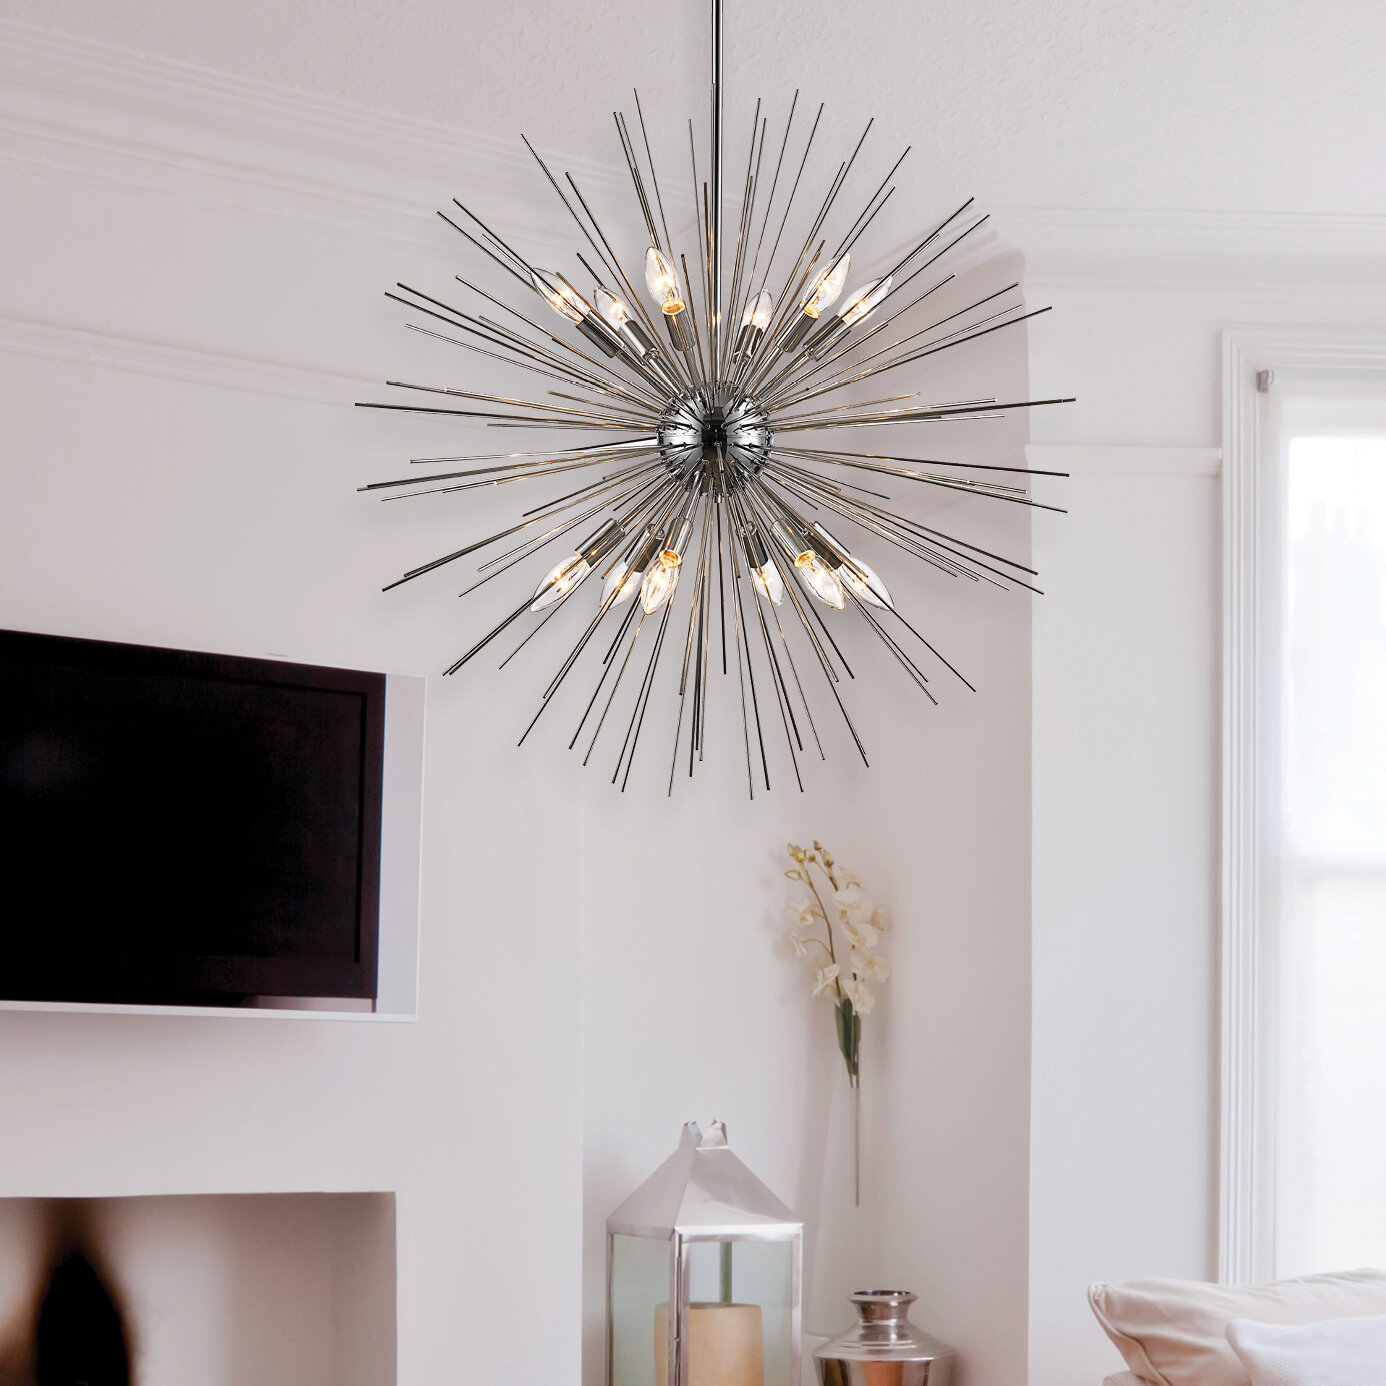 Antonie 12 Light Sputnik Chandelier With Regard To Corona 12 Light Sputnik Chandeliers (View 12 of 30)